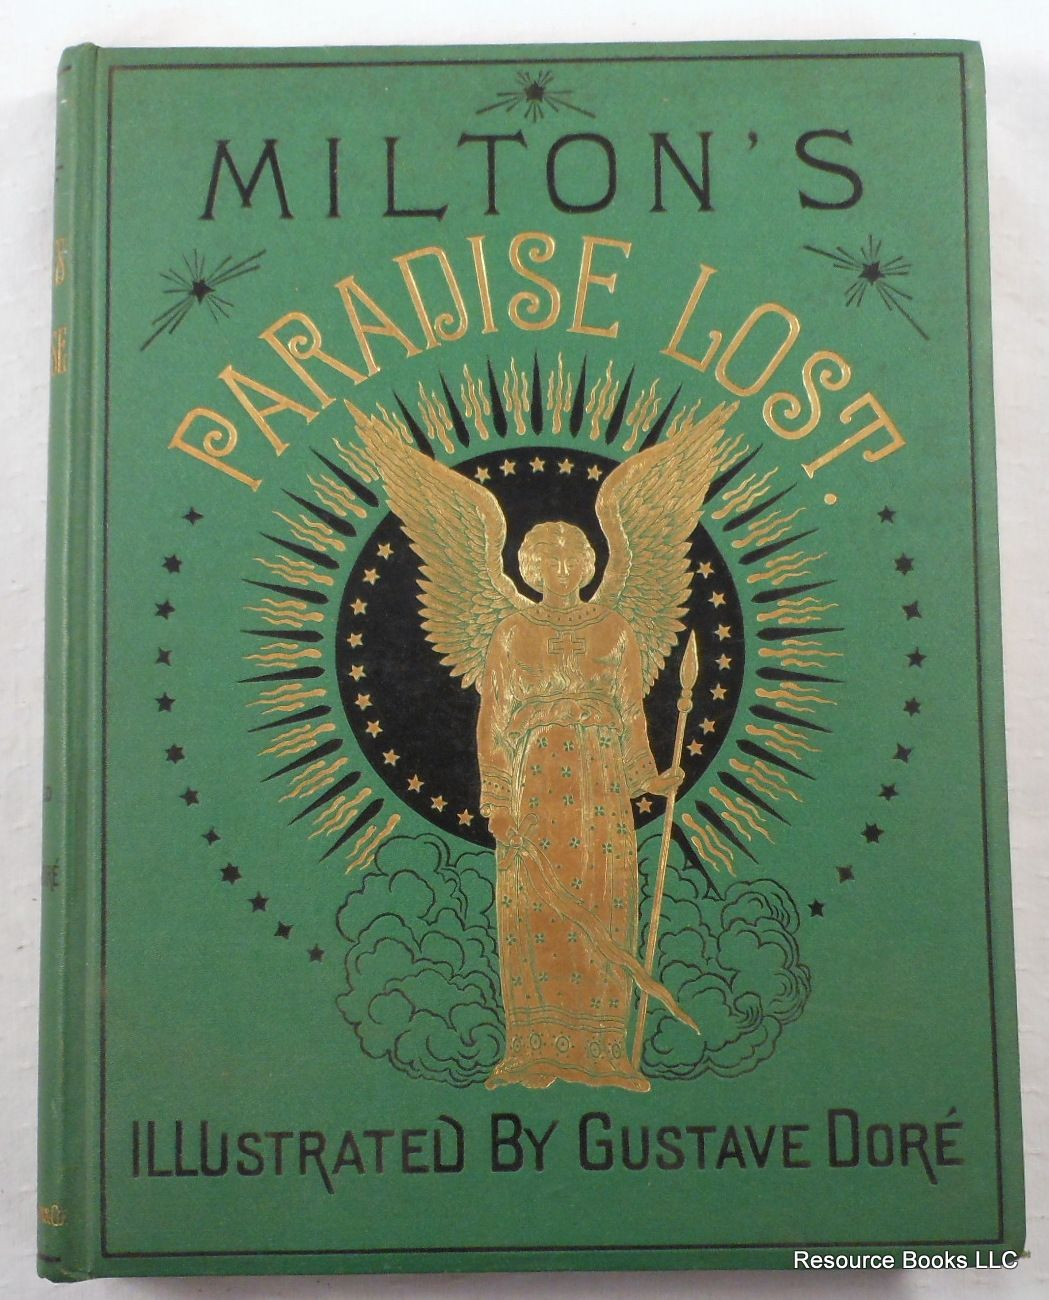 Lost Libro Milton 39s Paradise Lost Illustrated By Gustave Dore